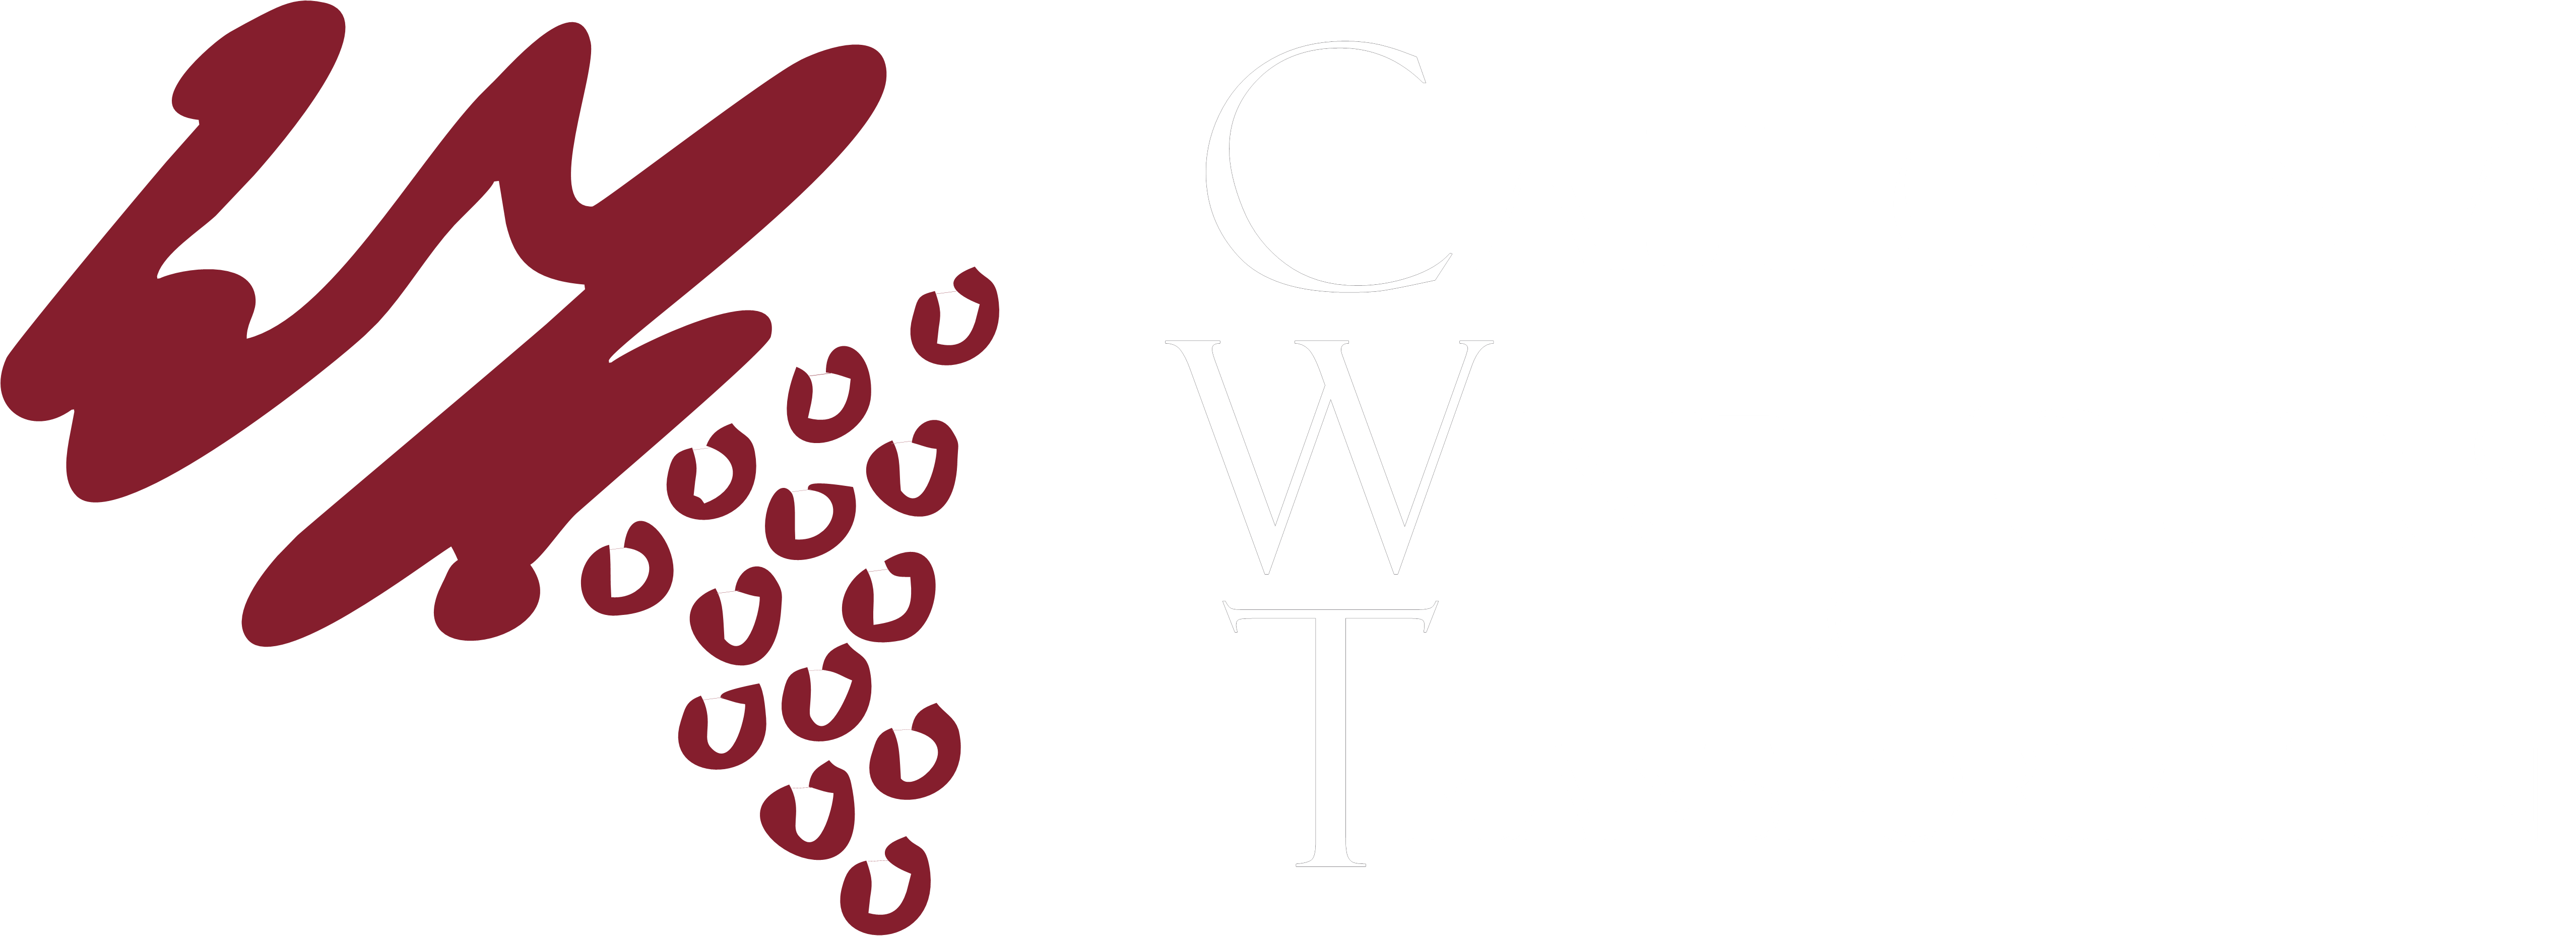 California Wine Tours logo